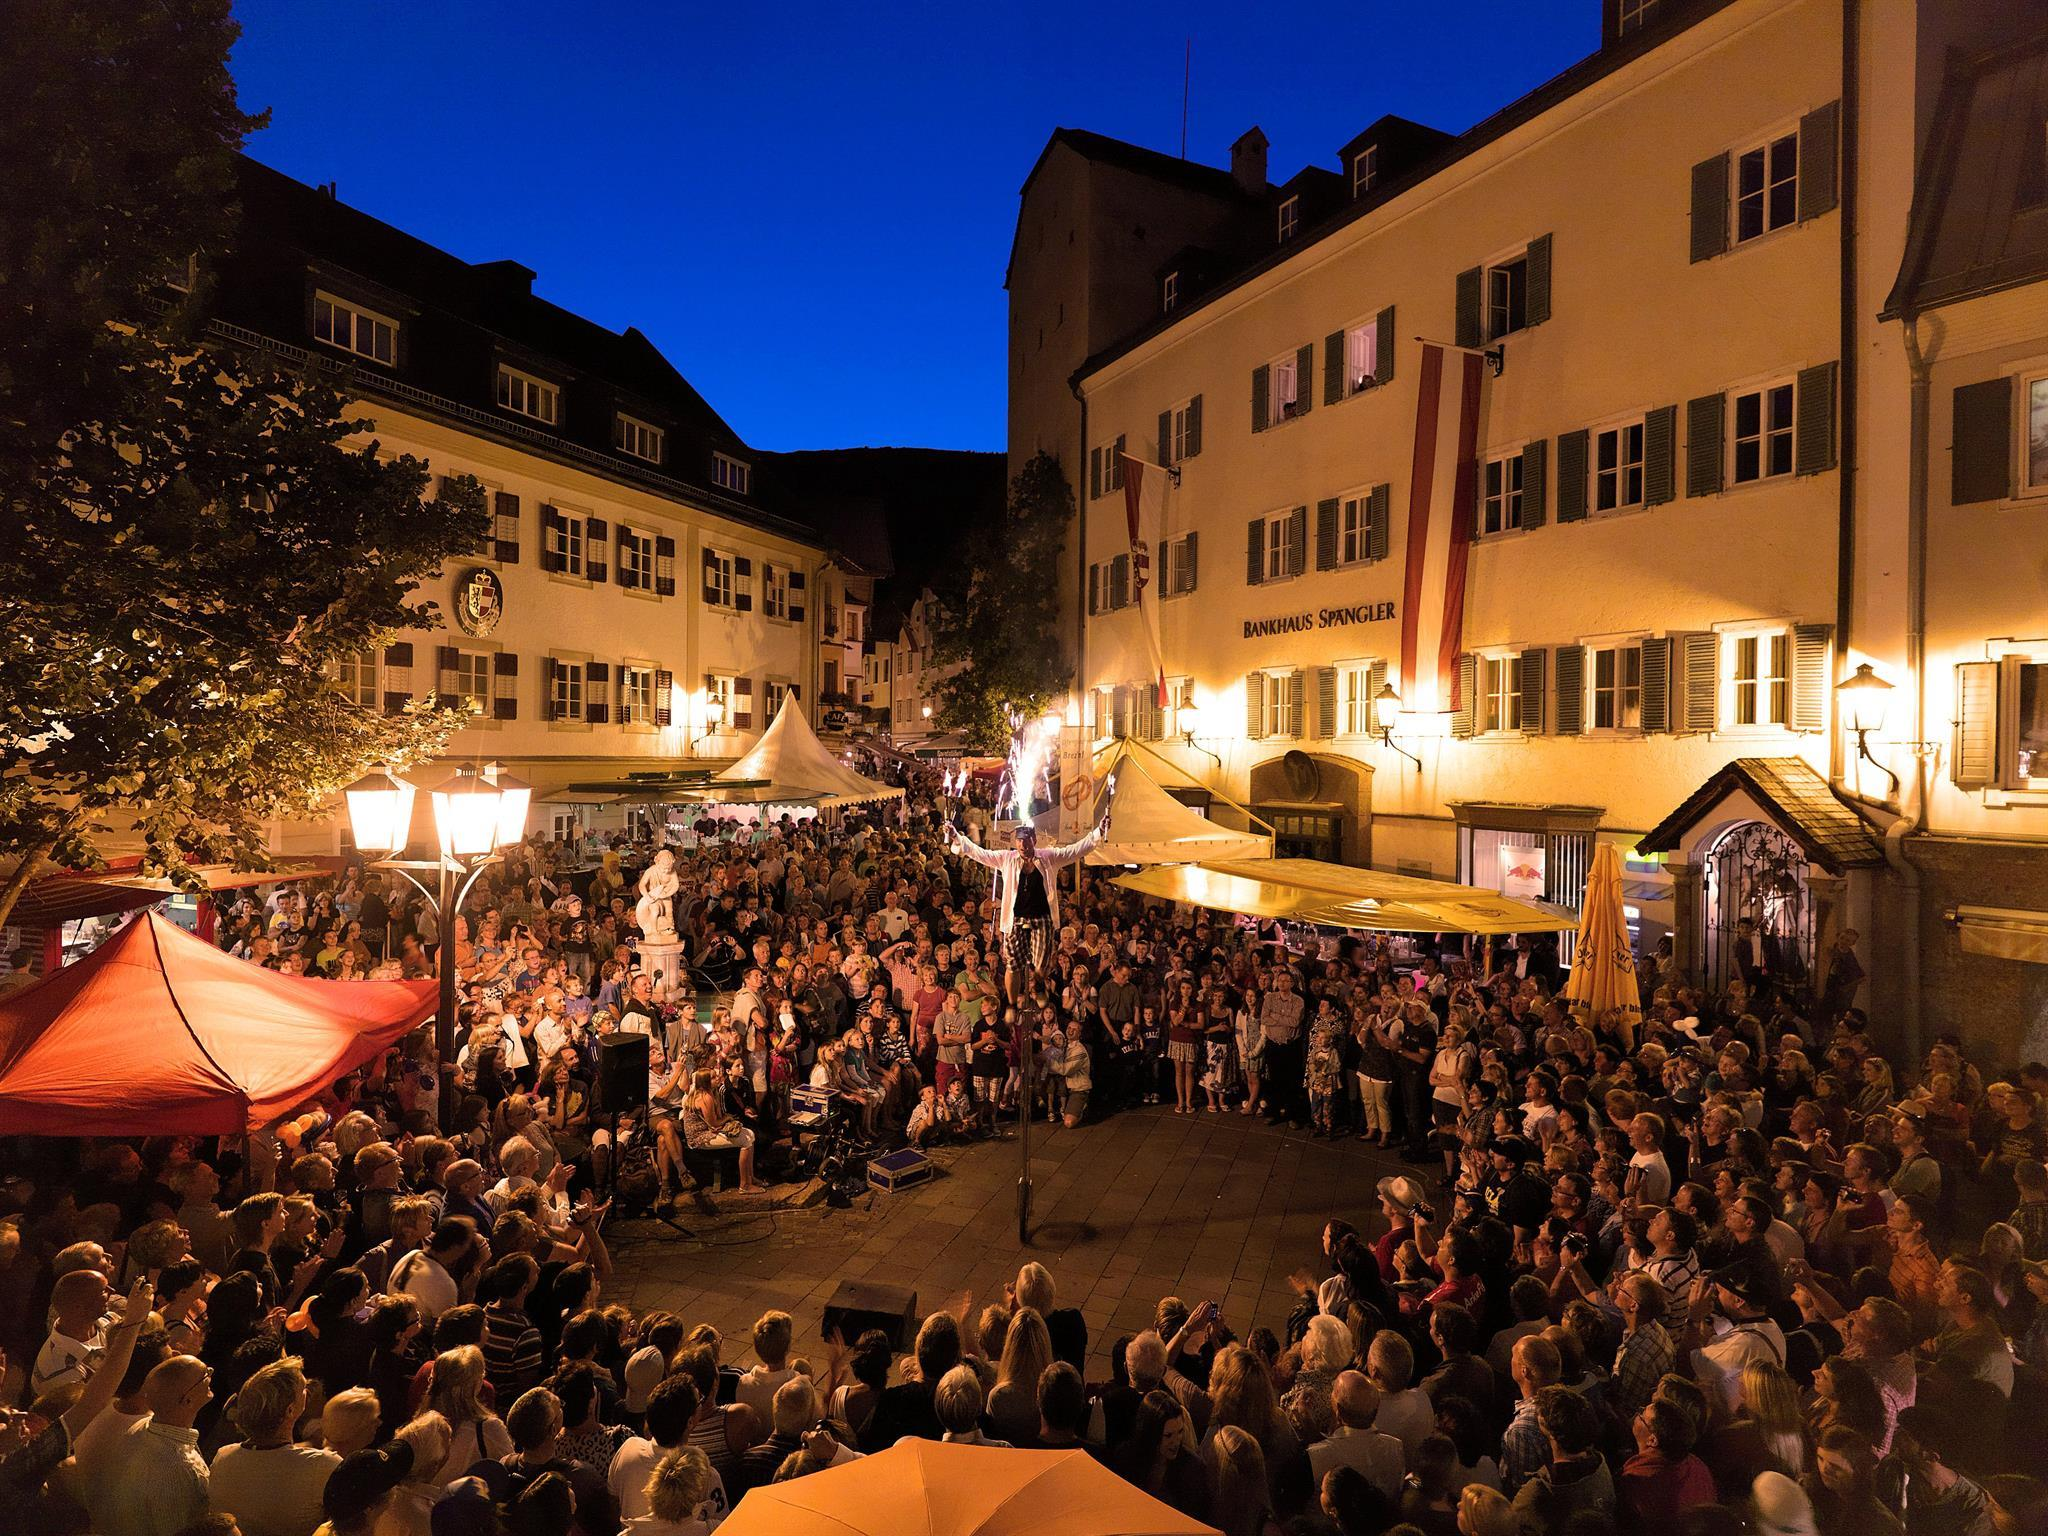 Zell SummerNightFestival - 01/07/2020, from 7:00 PM